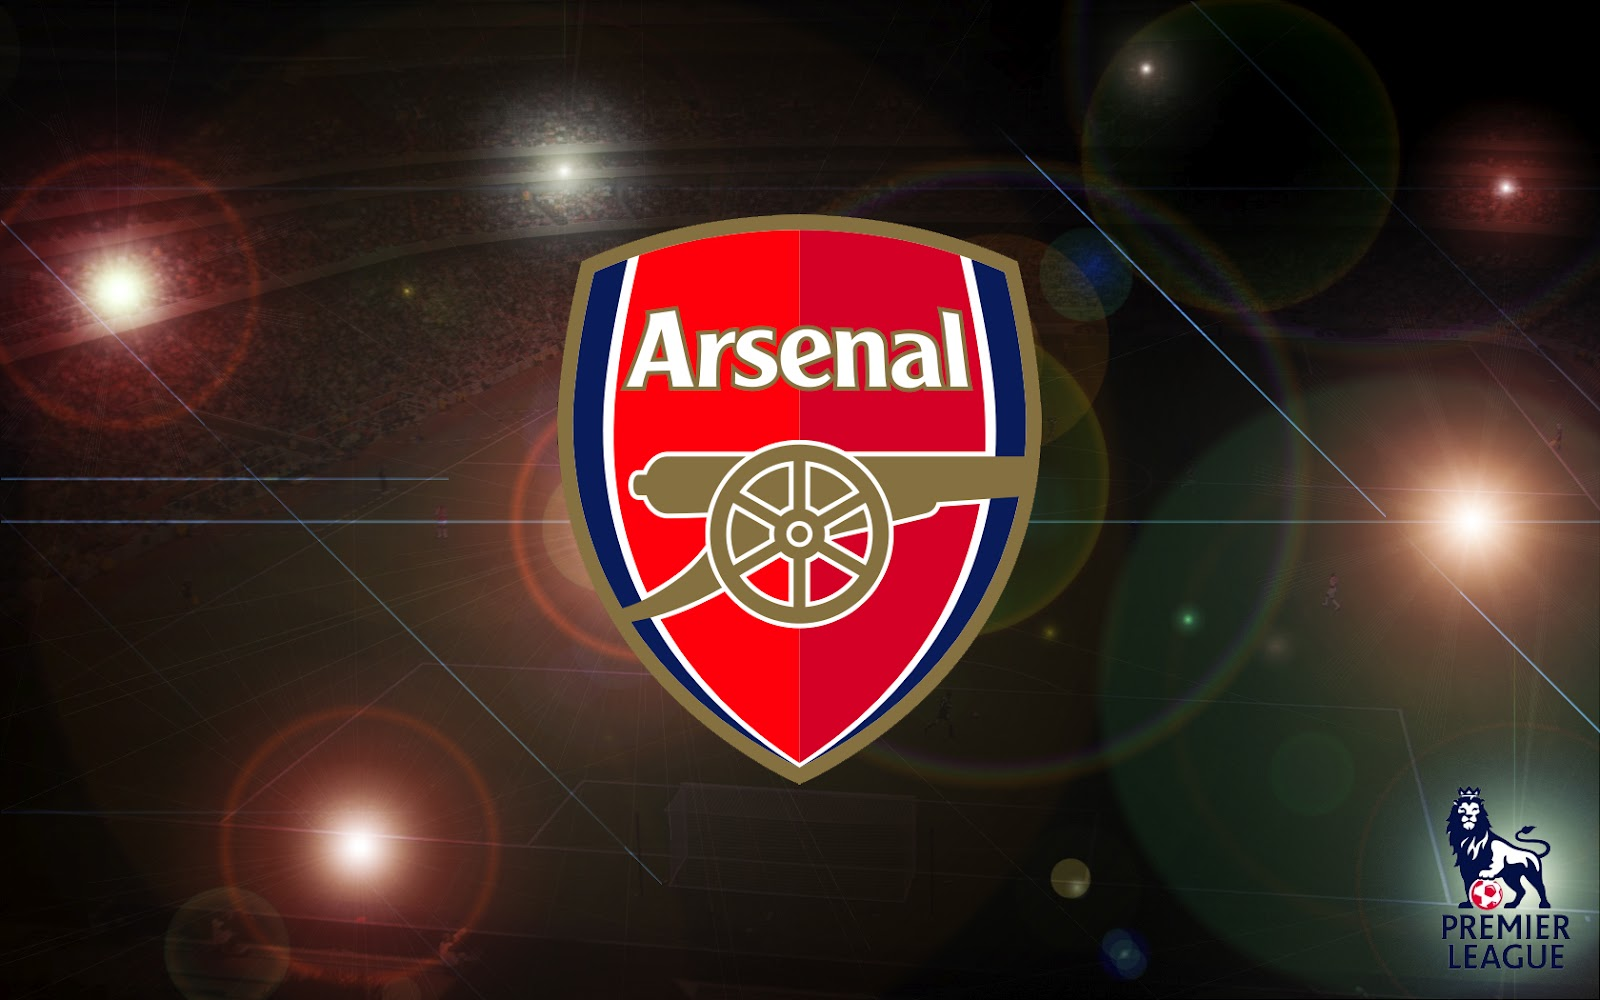 ARSENAL HD WALLPAPERS HD WALLPAPERS 1600x1000